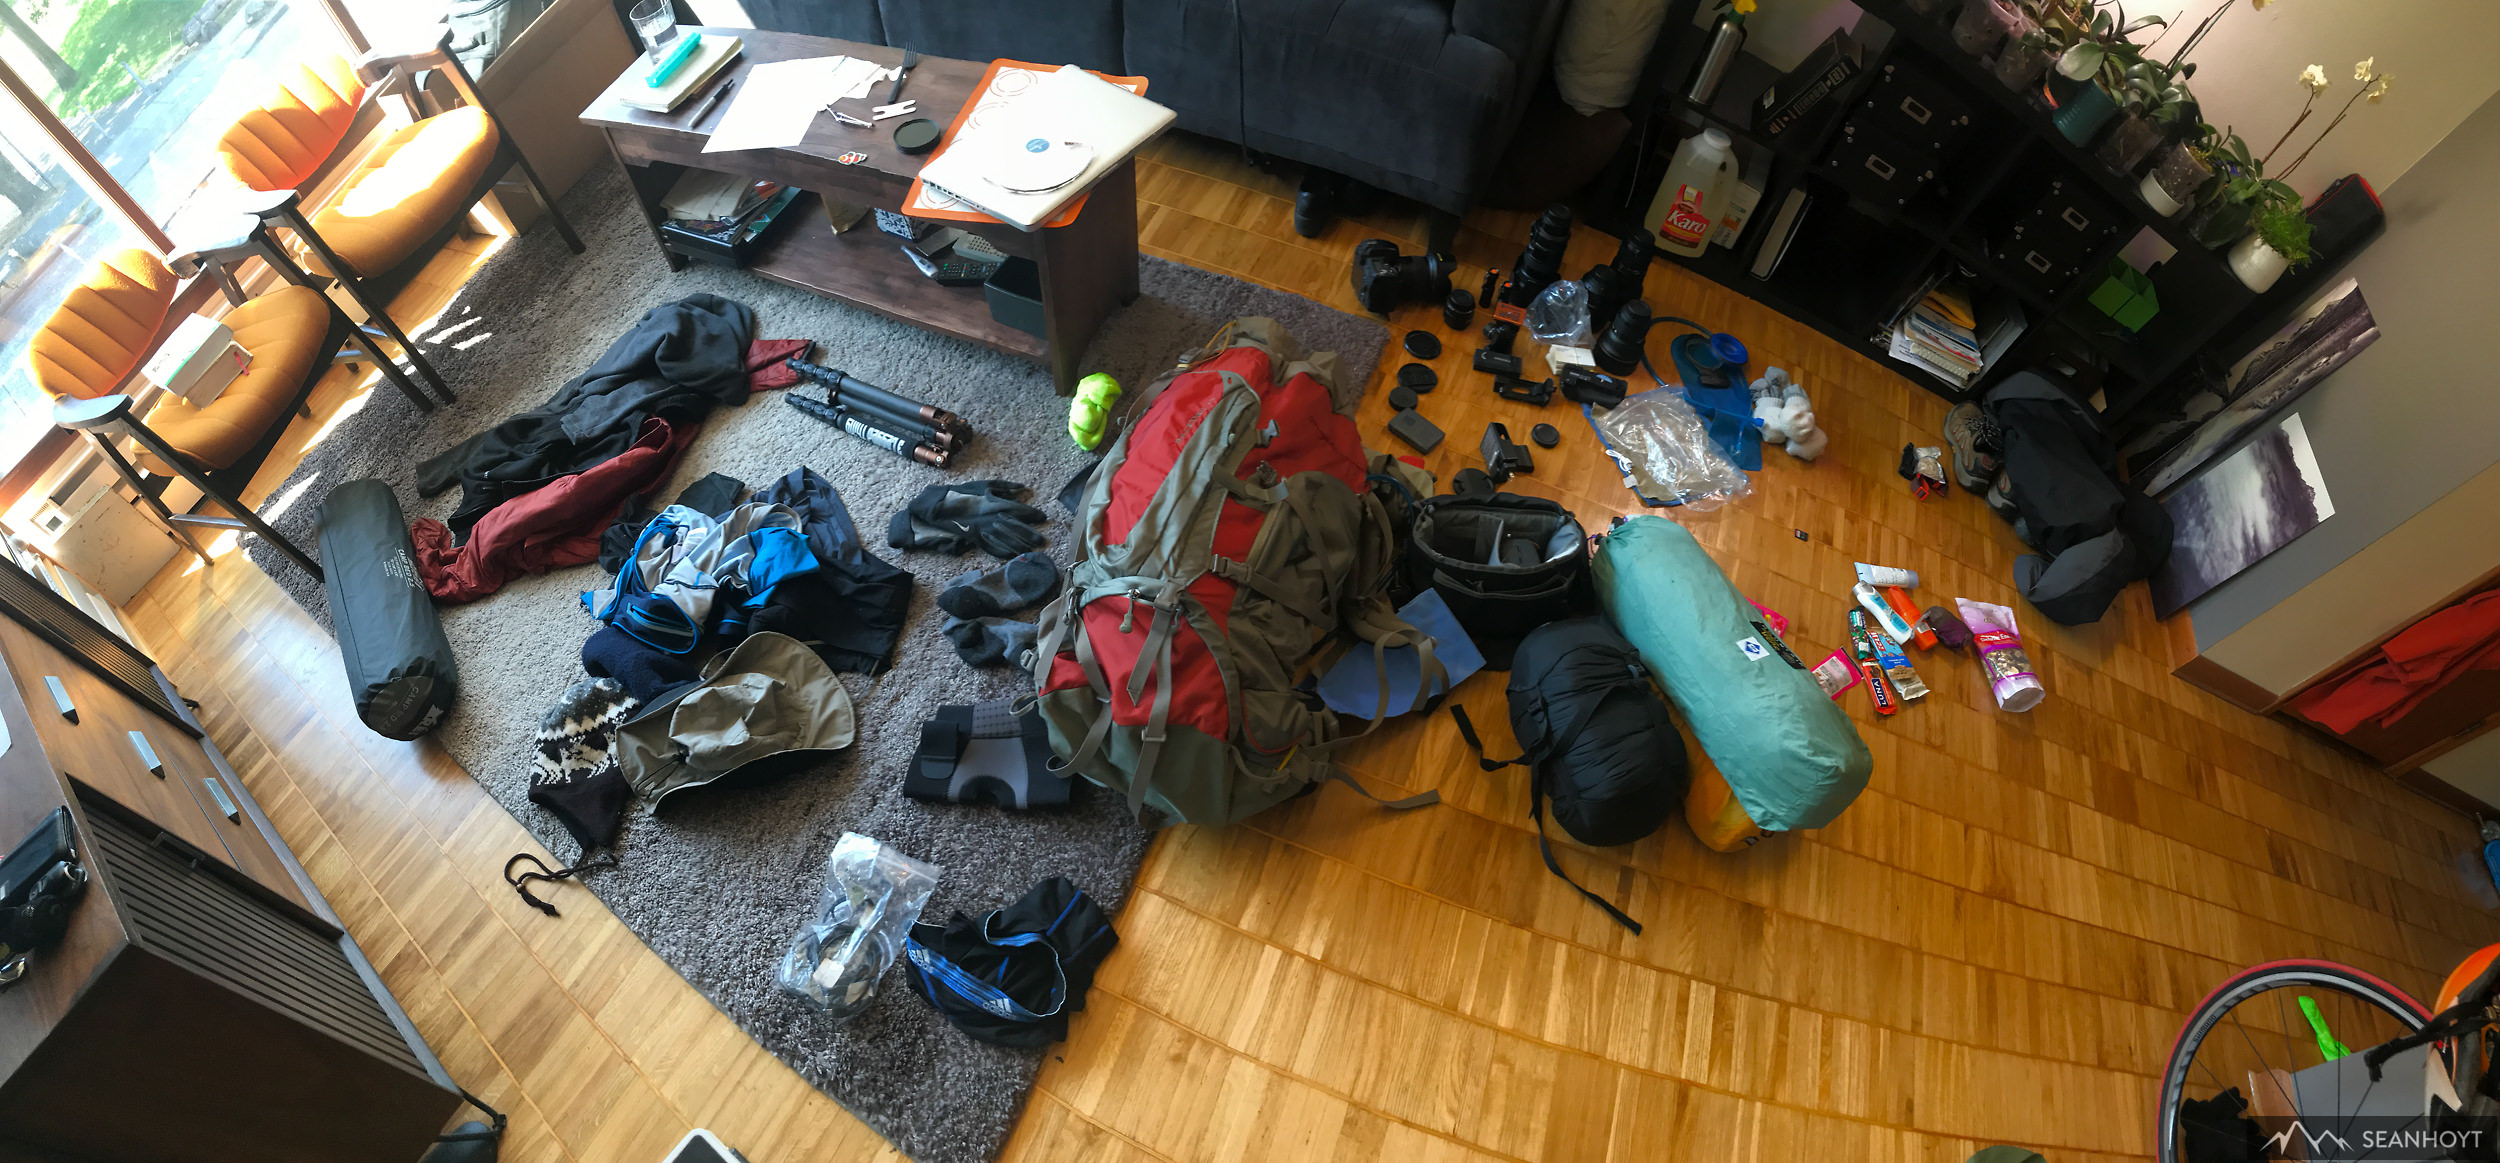 Gregory Baltoro 70L pack filled with:  Three Legged Thing  Eddie carbon fiber tripod sans ball head, tent, sleeping bag, bear canister (not shown), sleeping pad, two Nikon D750, Sigma Art 35mm 1.4, Sigma Art 50mm 1.4, Nikon 14-24mm 2.8, Gigapan Pro V, Camelbak 2L, Sawyer water filtration.